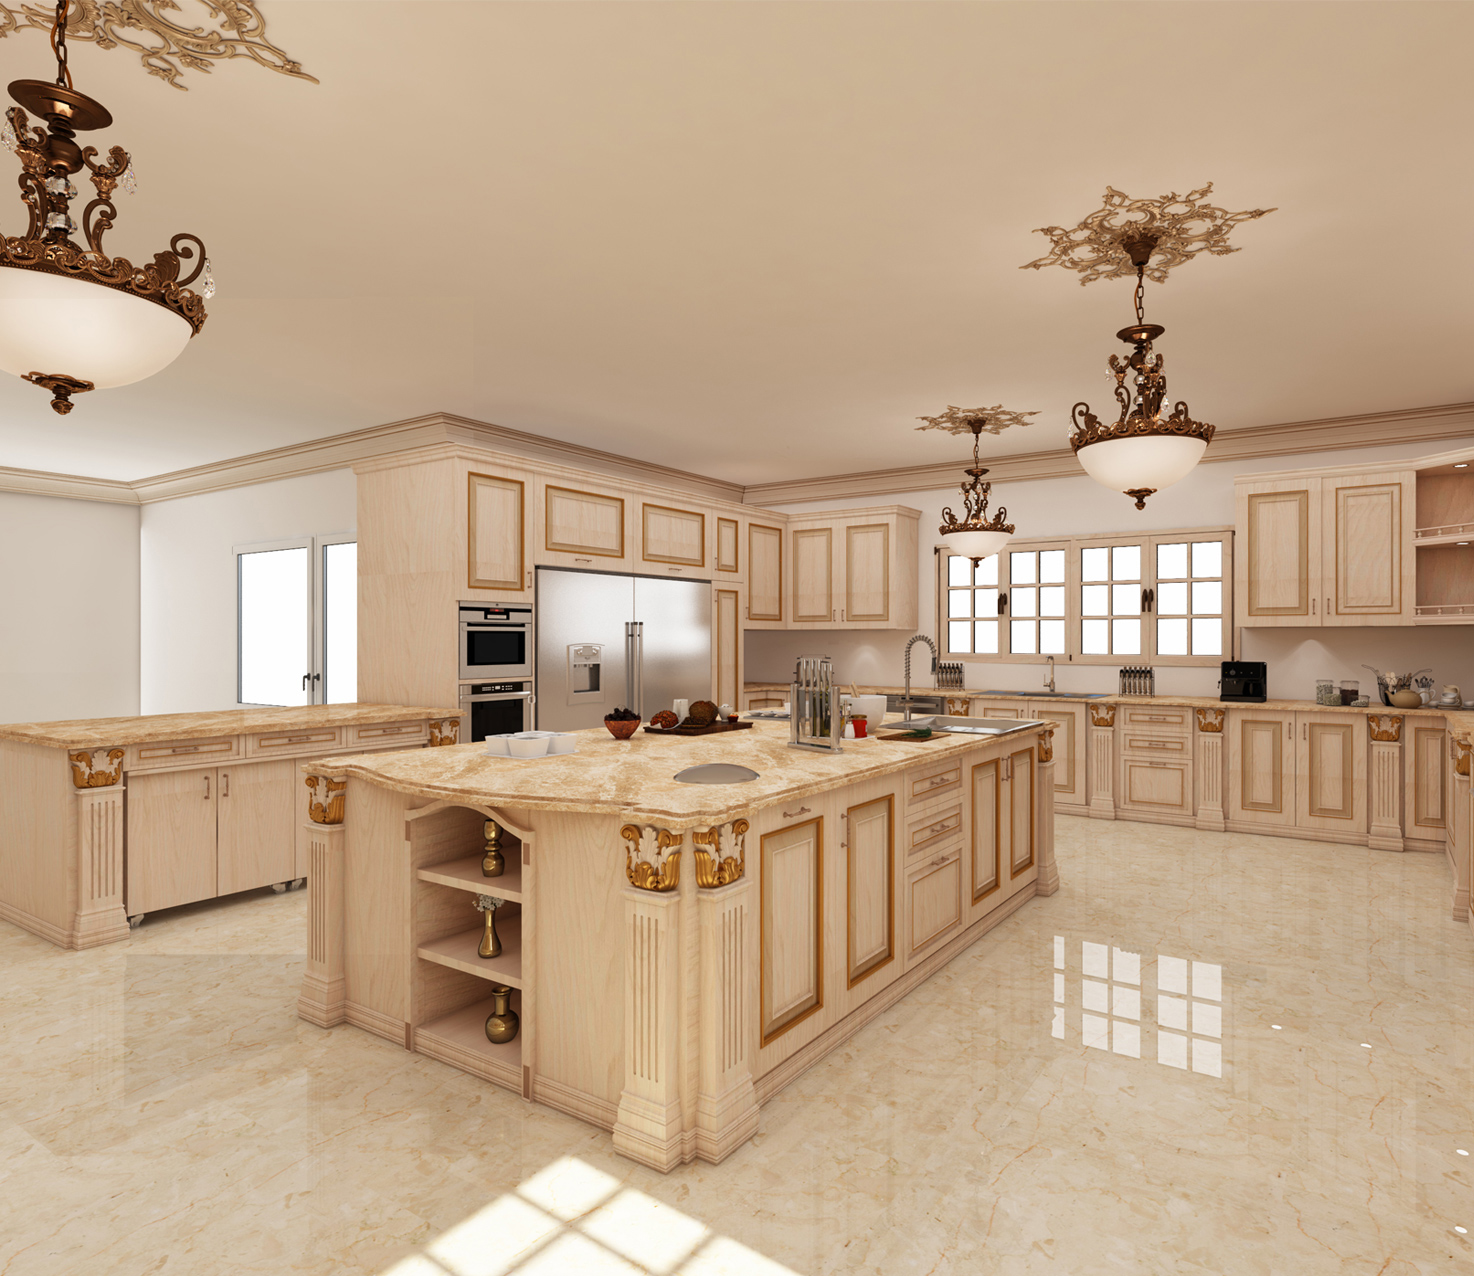 Kitchen Cabinet Supplier In: Kitchen Cabinet Supplier In Dubai